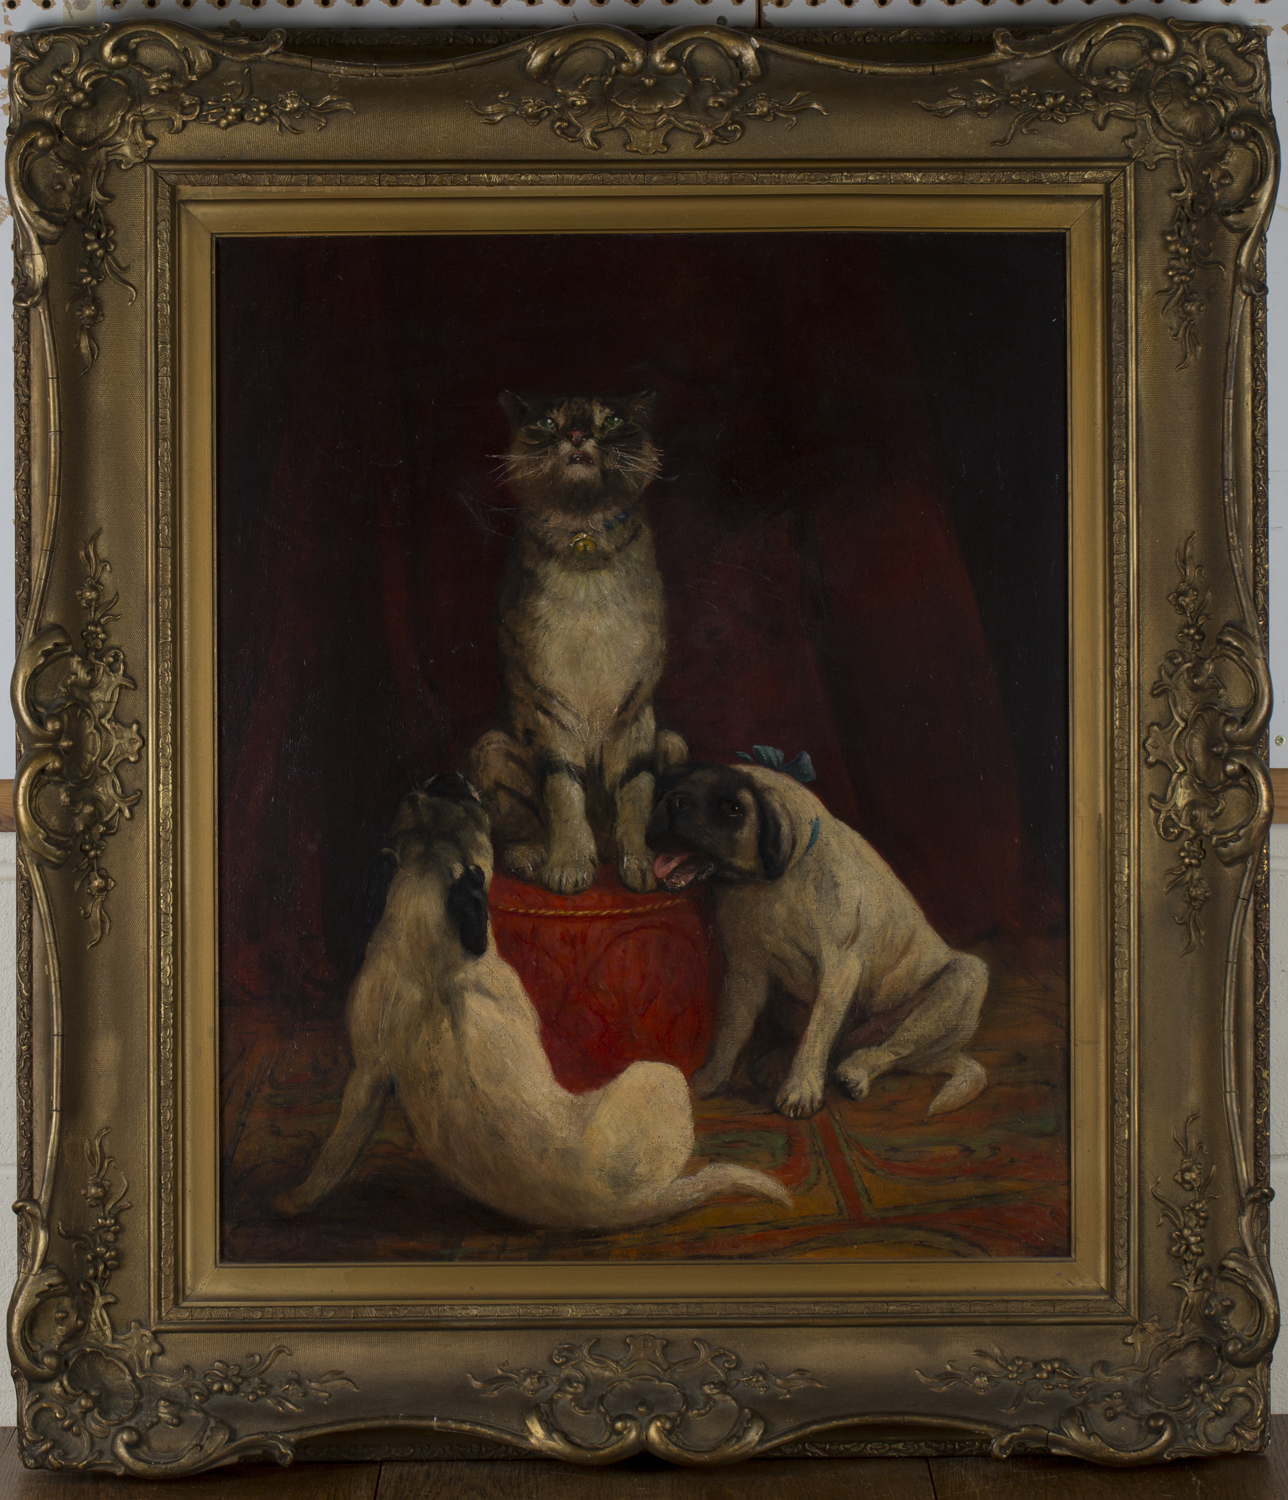 Lot 29 - Frederick Thomas Daws - The Crescendo (Two Pug Dogs and a Cat), late 19th/early 20th century oil